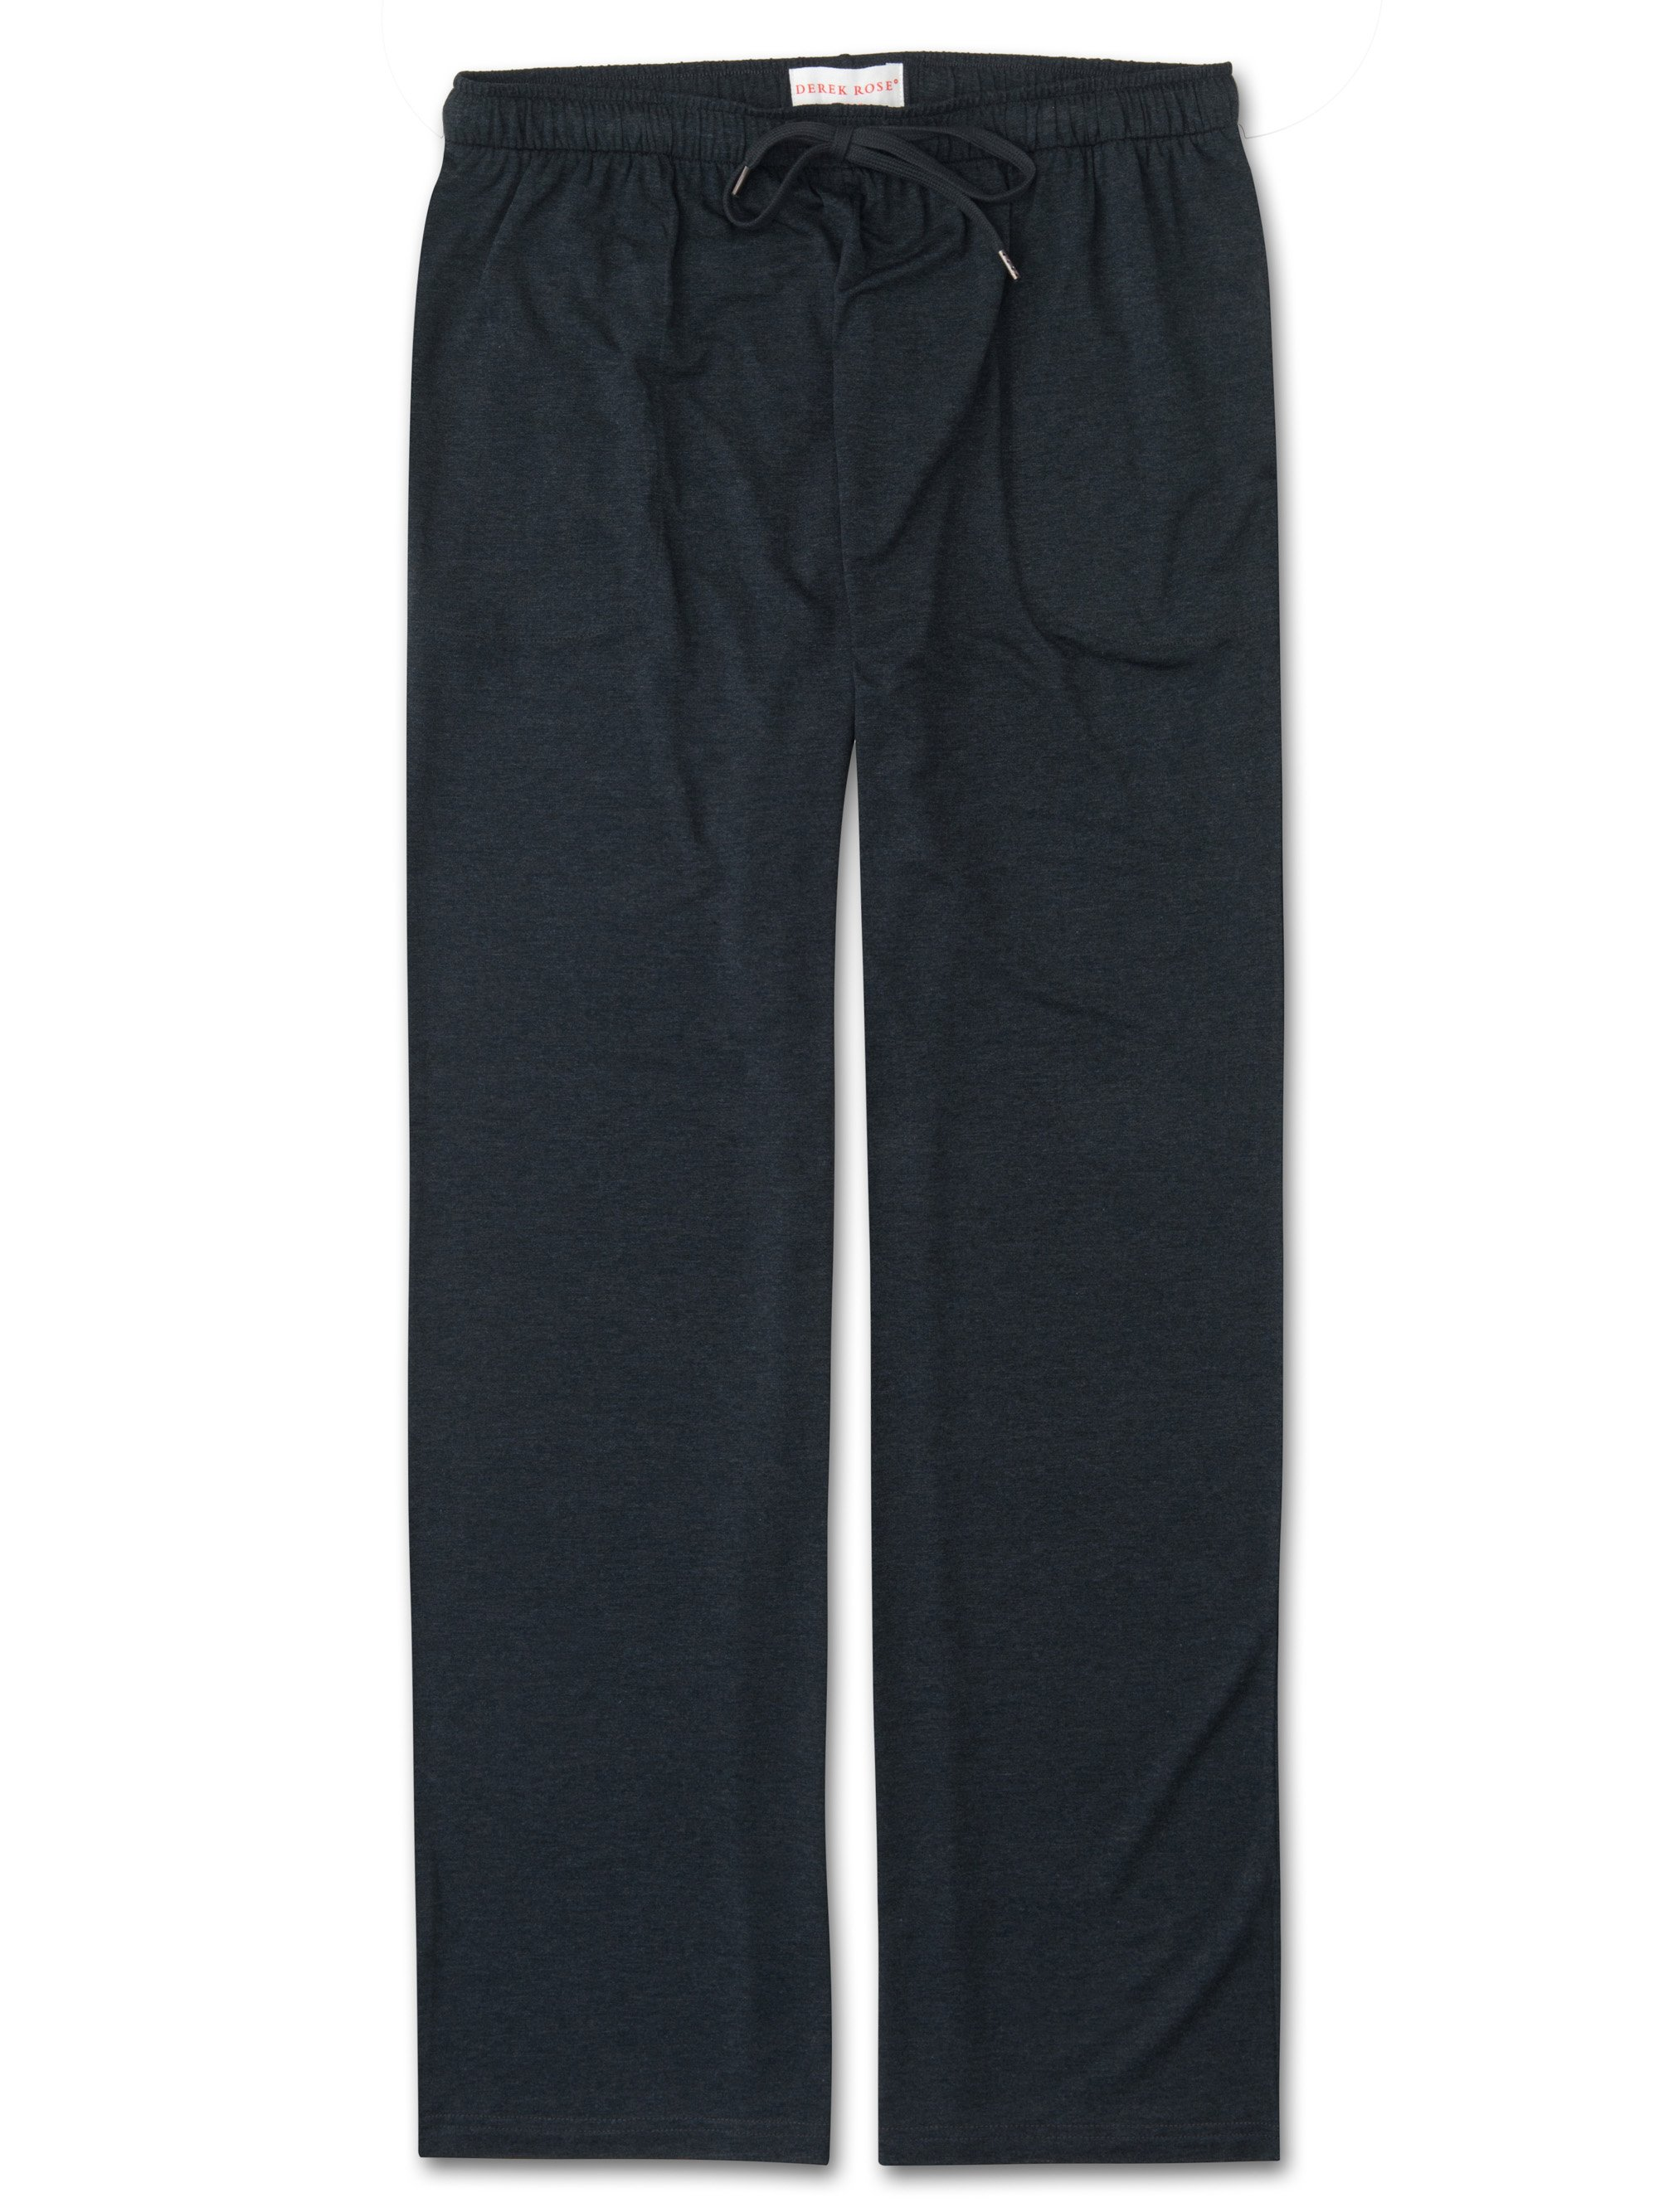 Men's Jersey Trousers Marlowe Micro Modal Stretch Anthracite